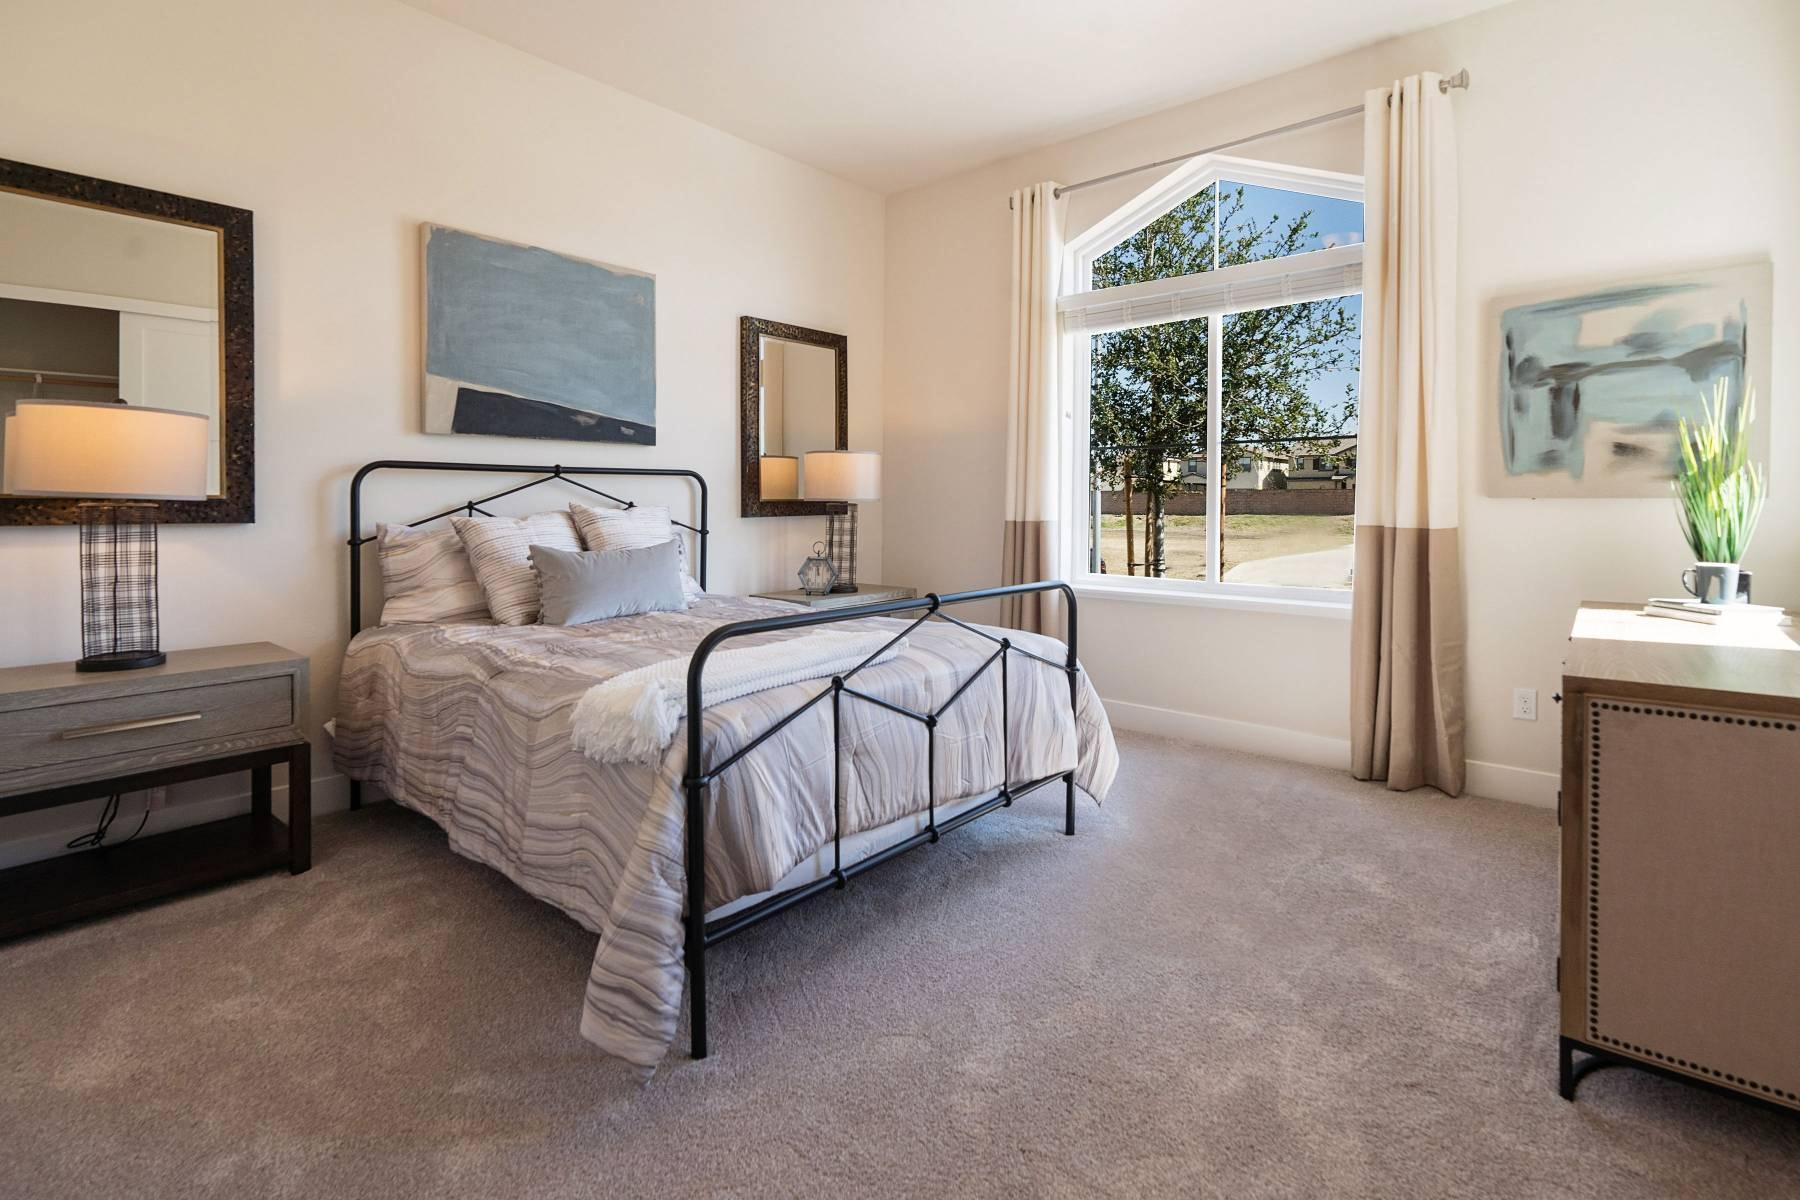 Bedroom featured in the Brome By Elliott Homes in Sacramento, CA